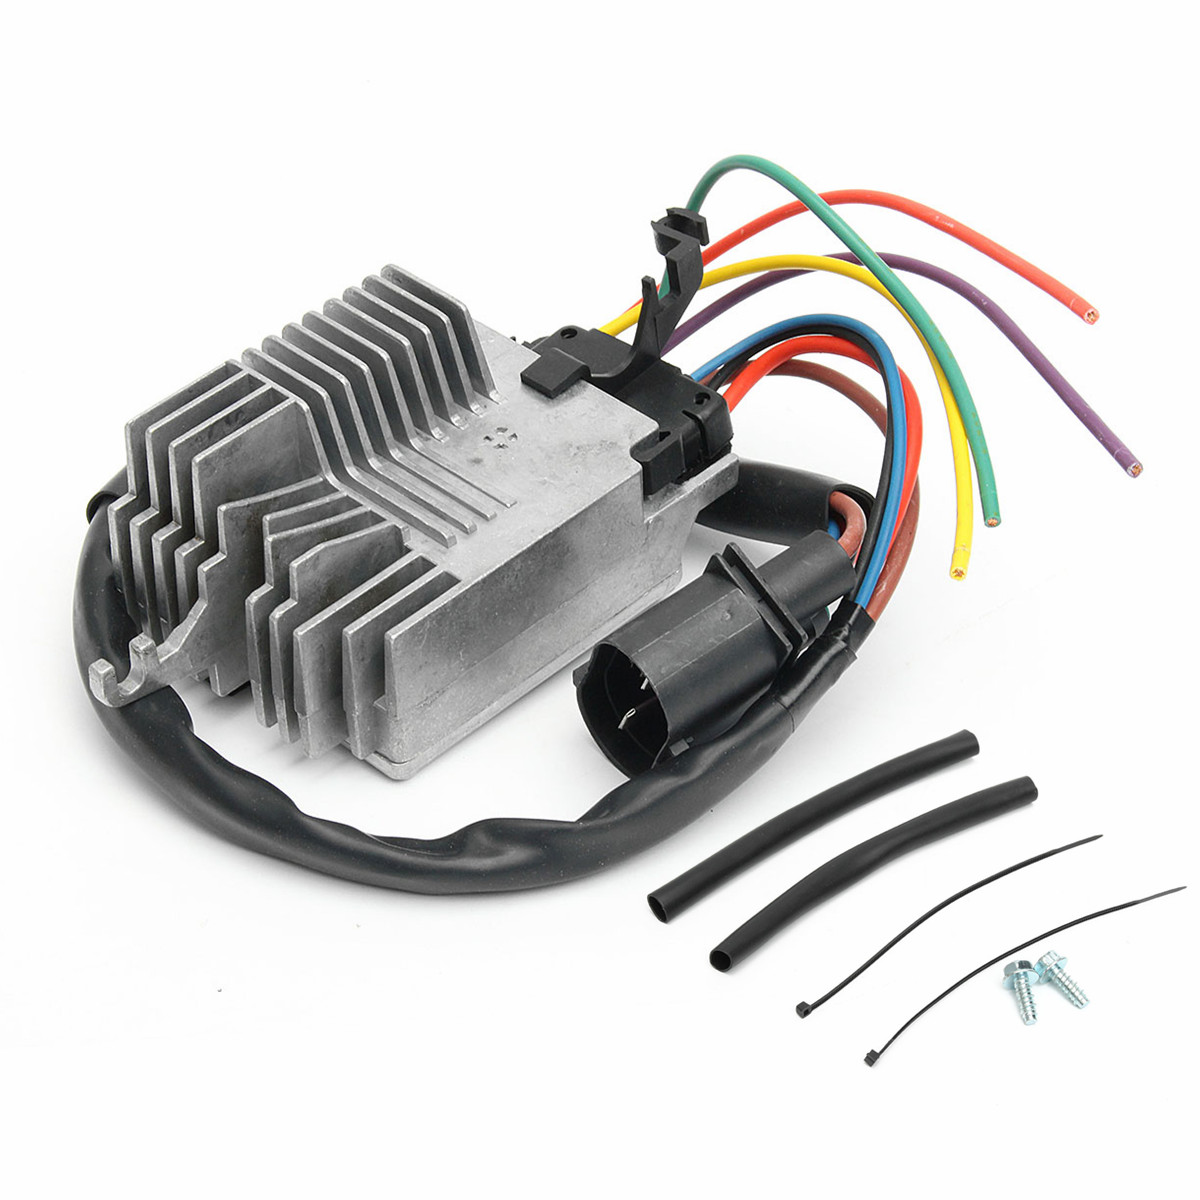 Car Radiator Cooling Fan Control Module For Audi A4 Quattro 02 09 Wiring 8e0959501ag Plastic And Steel In Condensers Evaporators From Automobiles